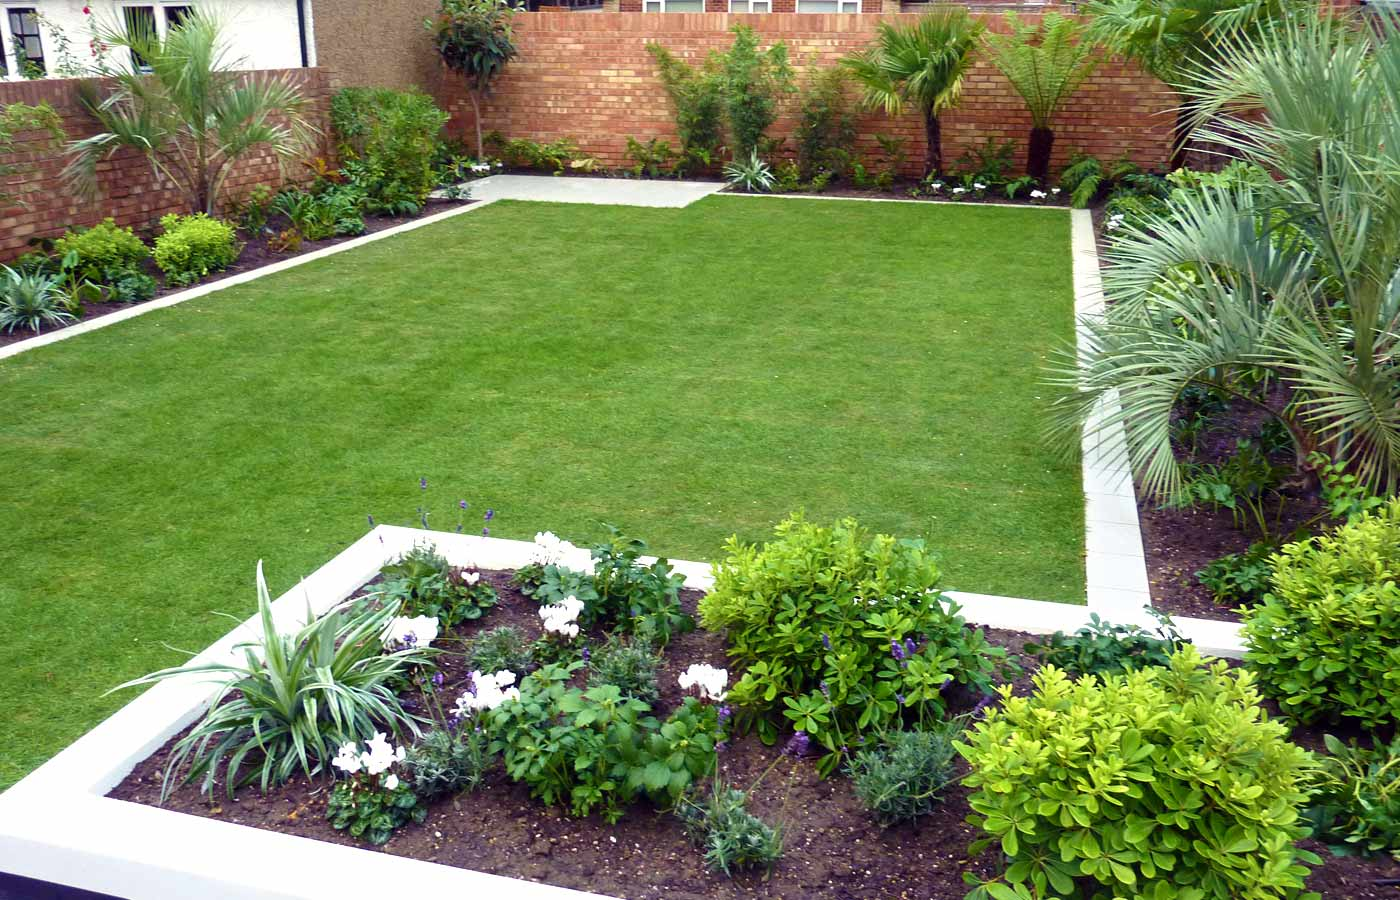 Home Garden Design Pictures best 20 formal garden design ideas on pinterest formal gardens